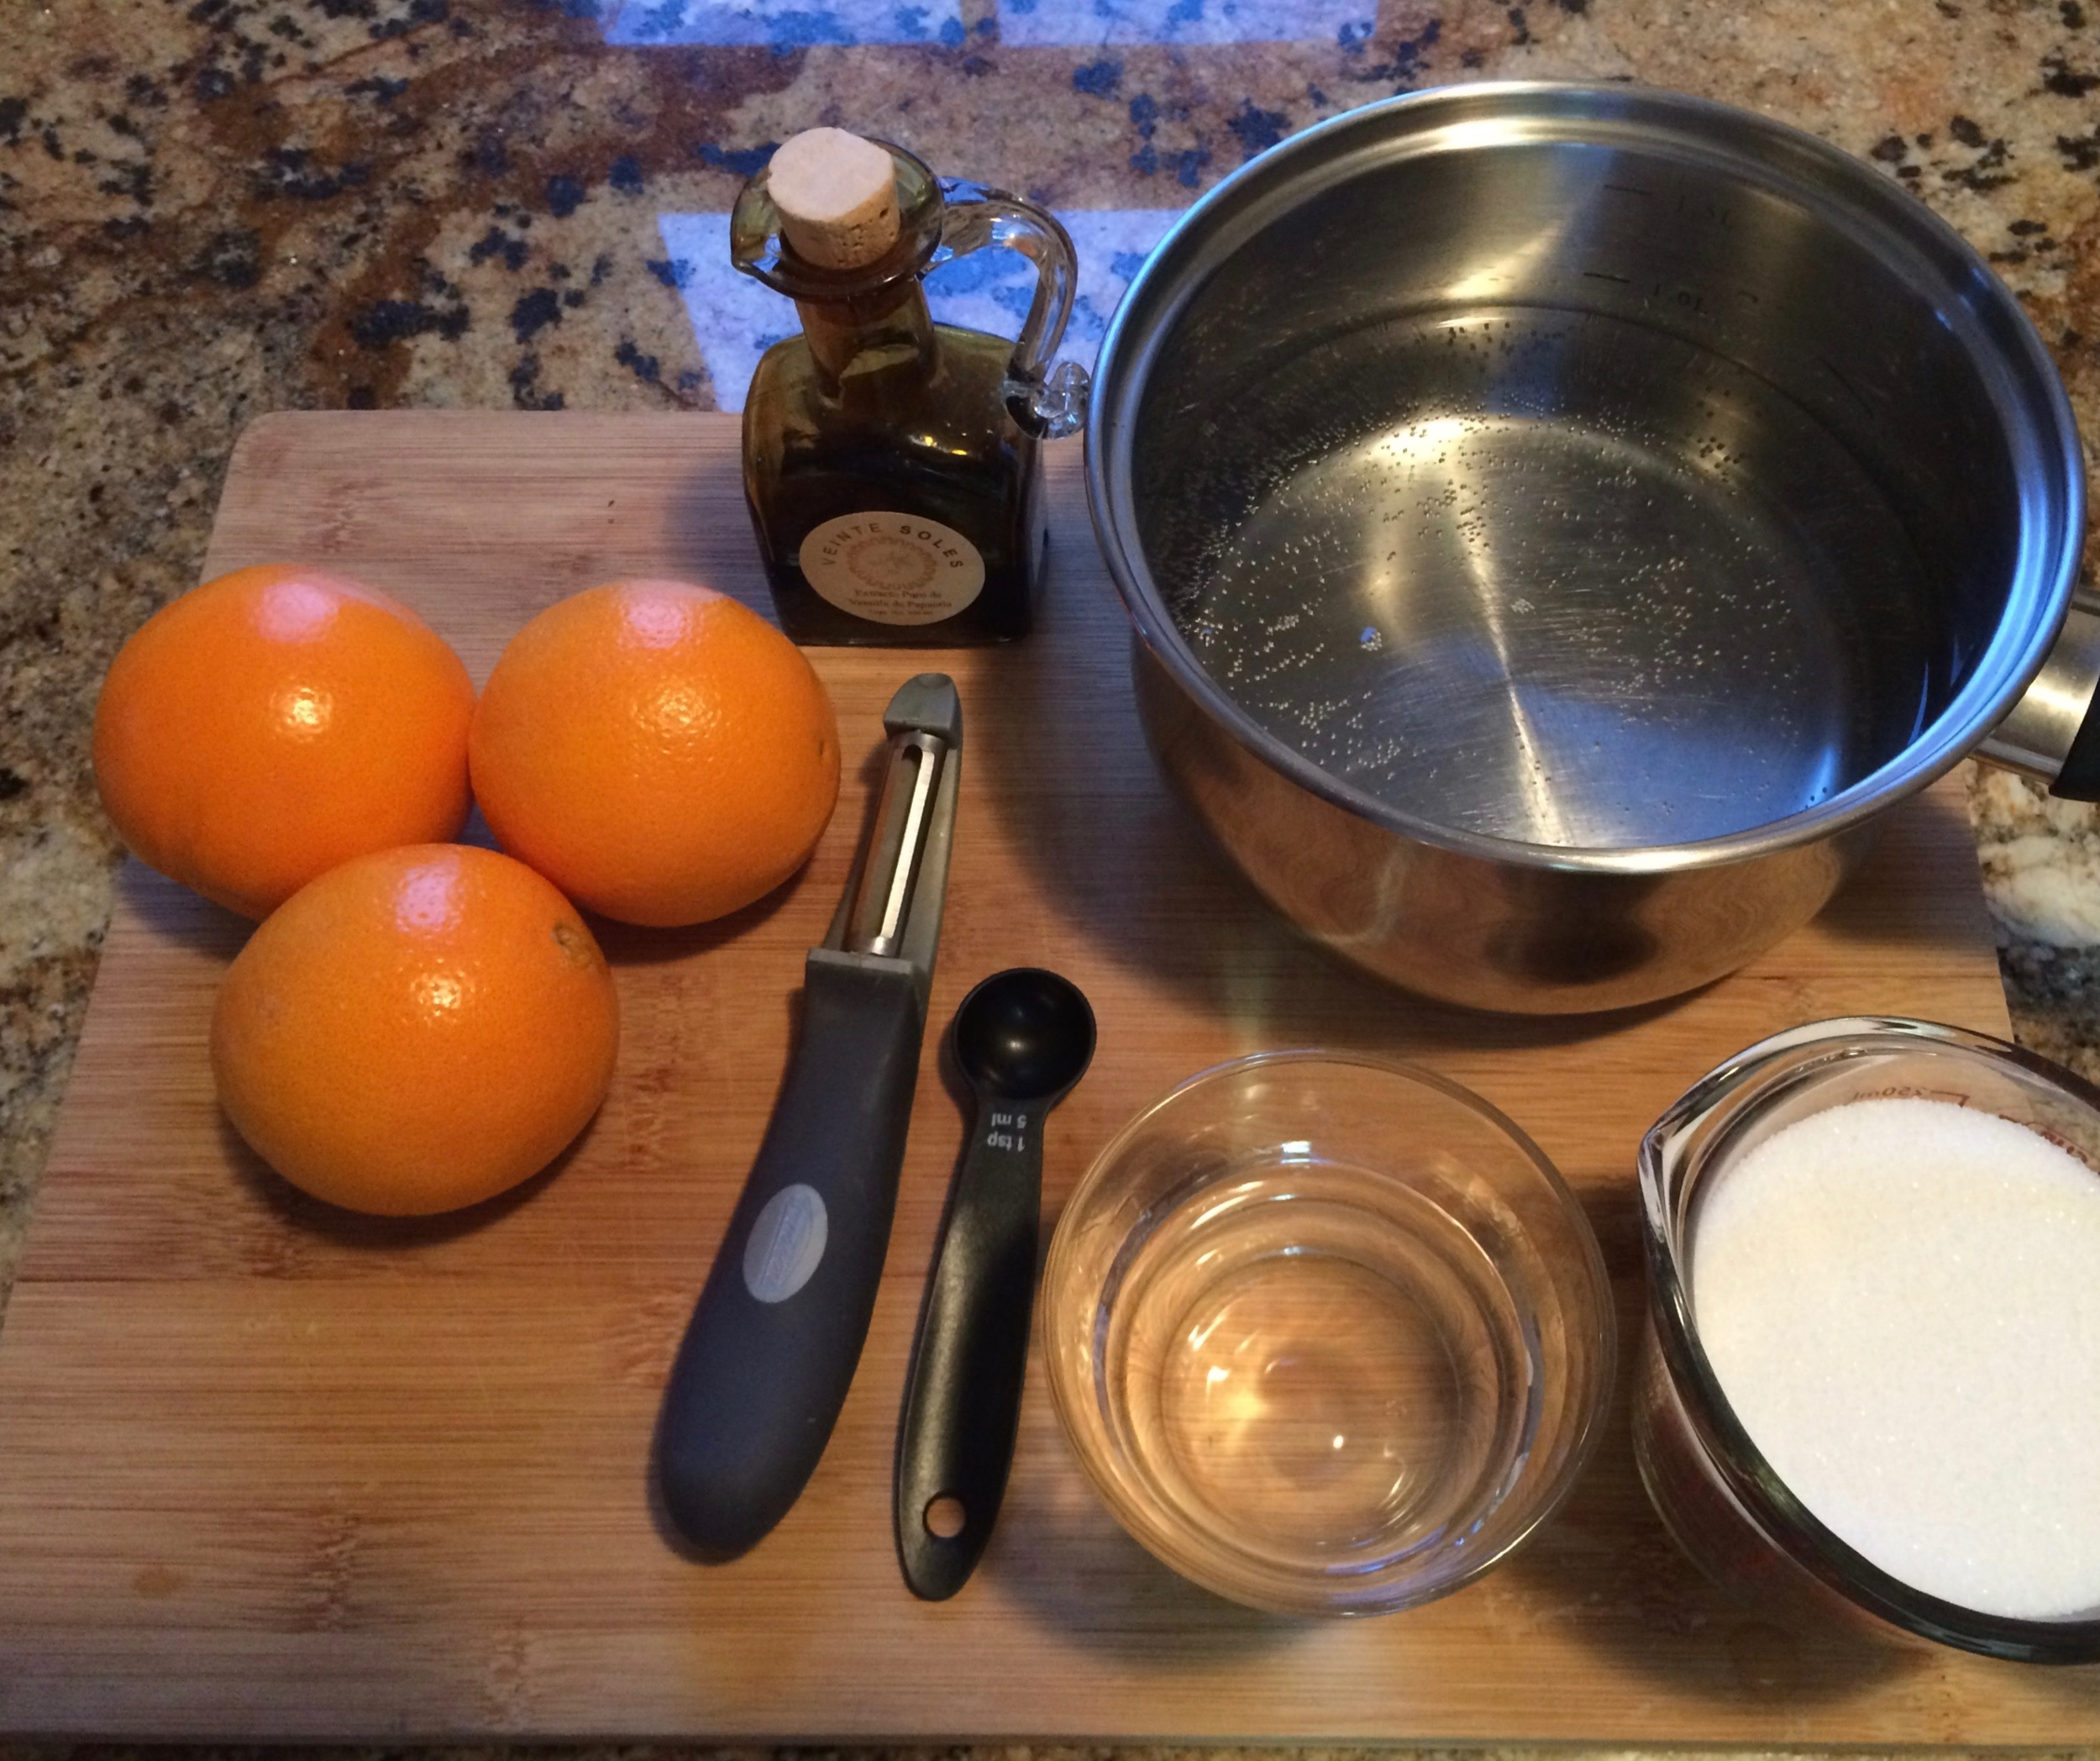 Because you'll be boiling sugar at one point, it's better to have all your ingredients, pots and bowls ready.